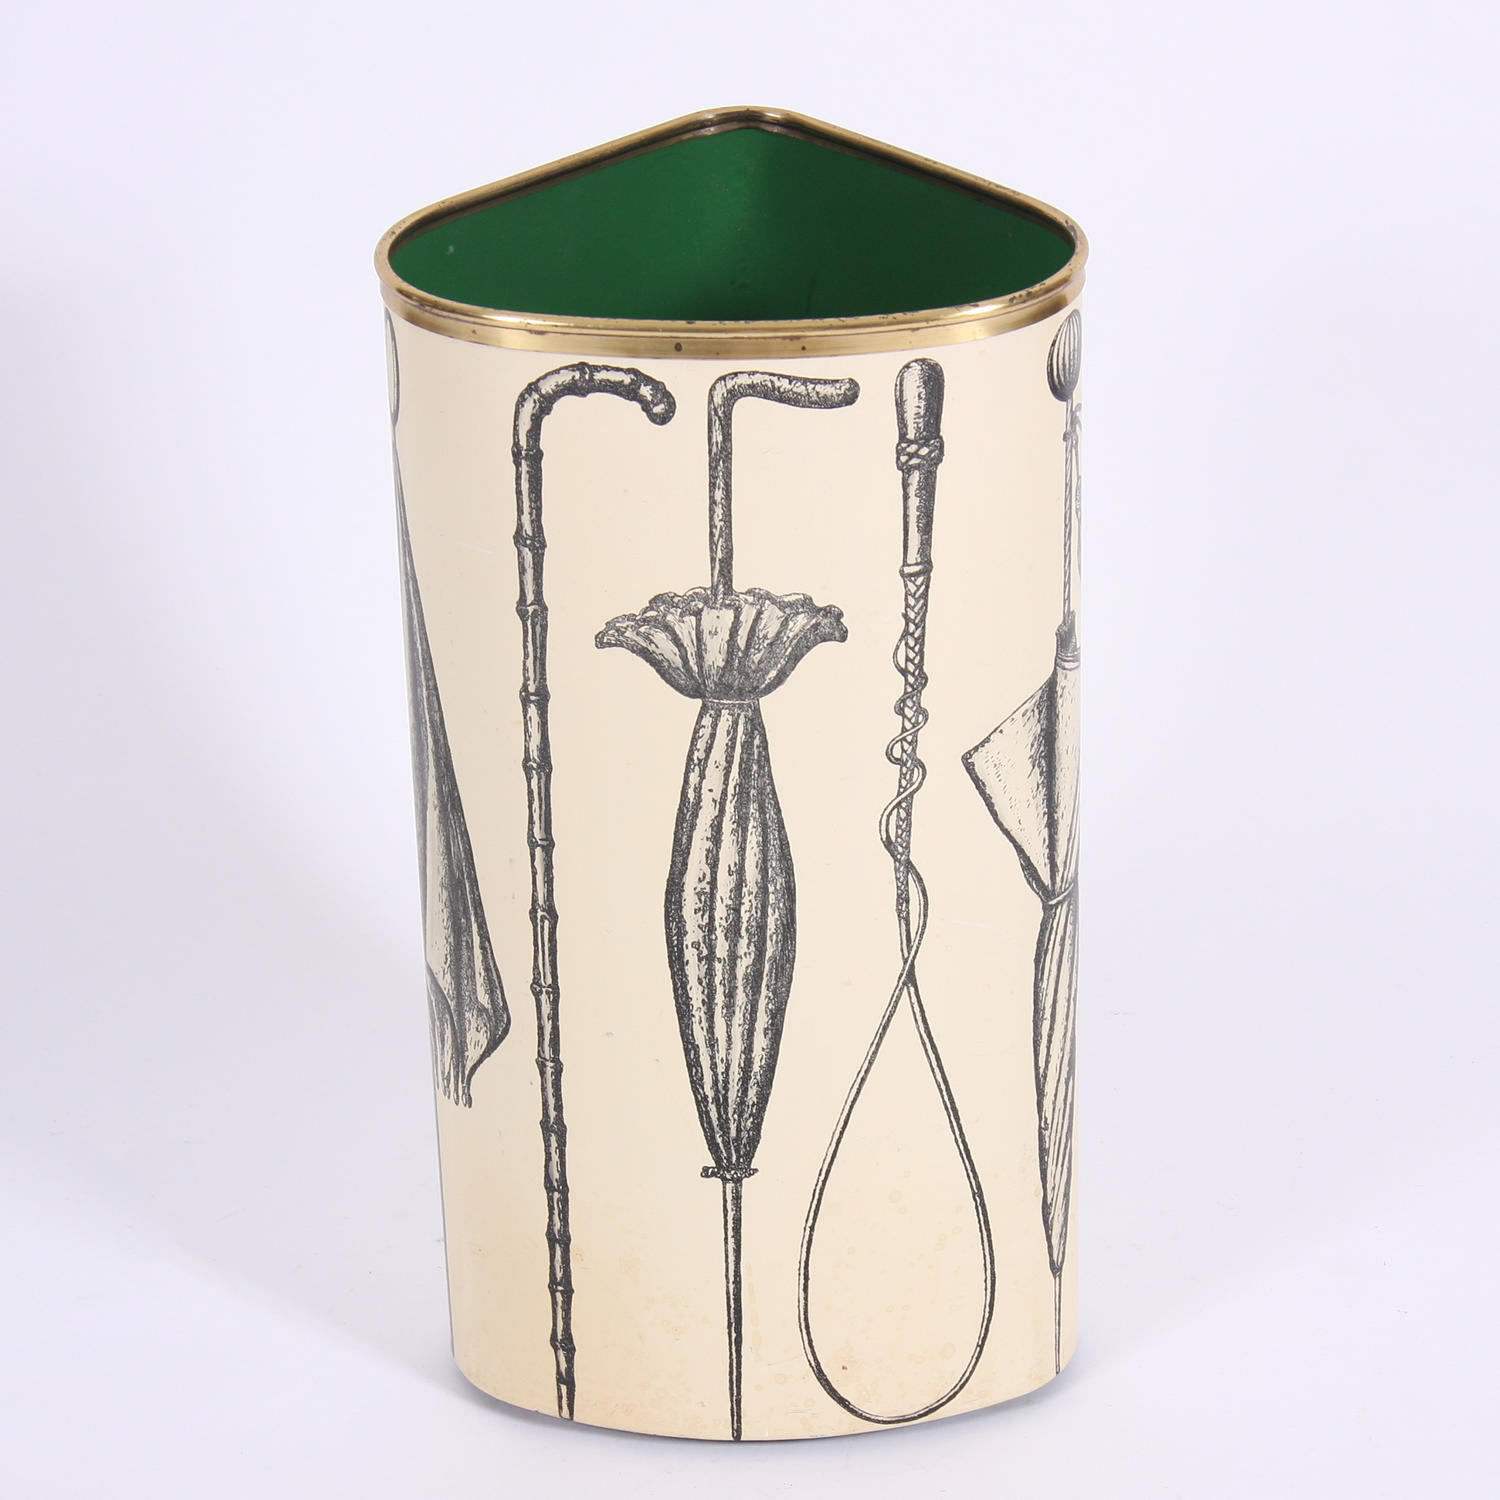 Umbrella Stand by Felice Galbiati